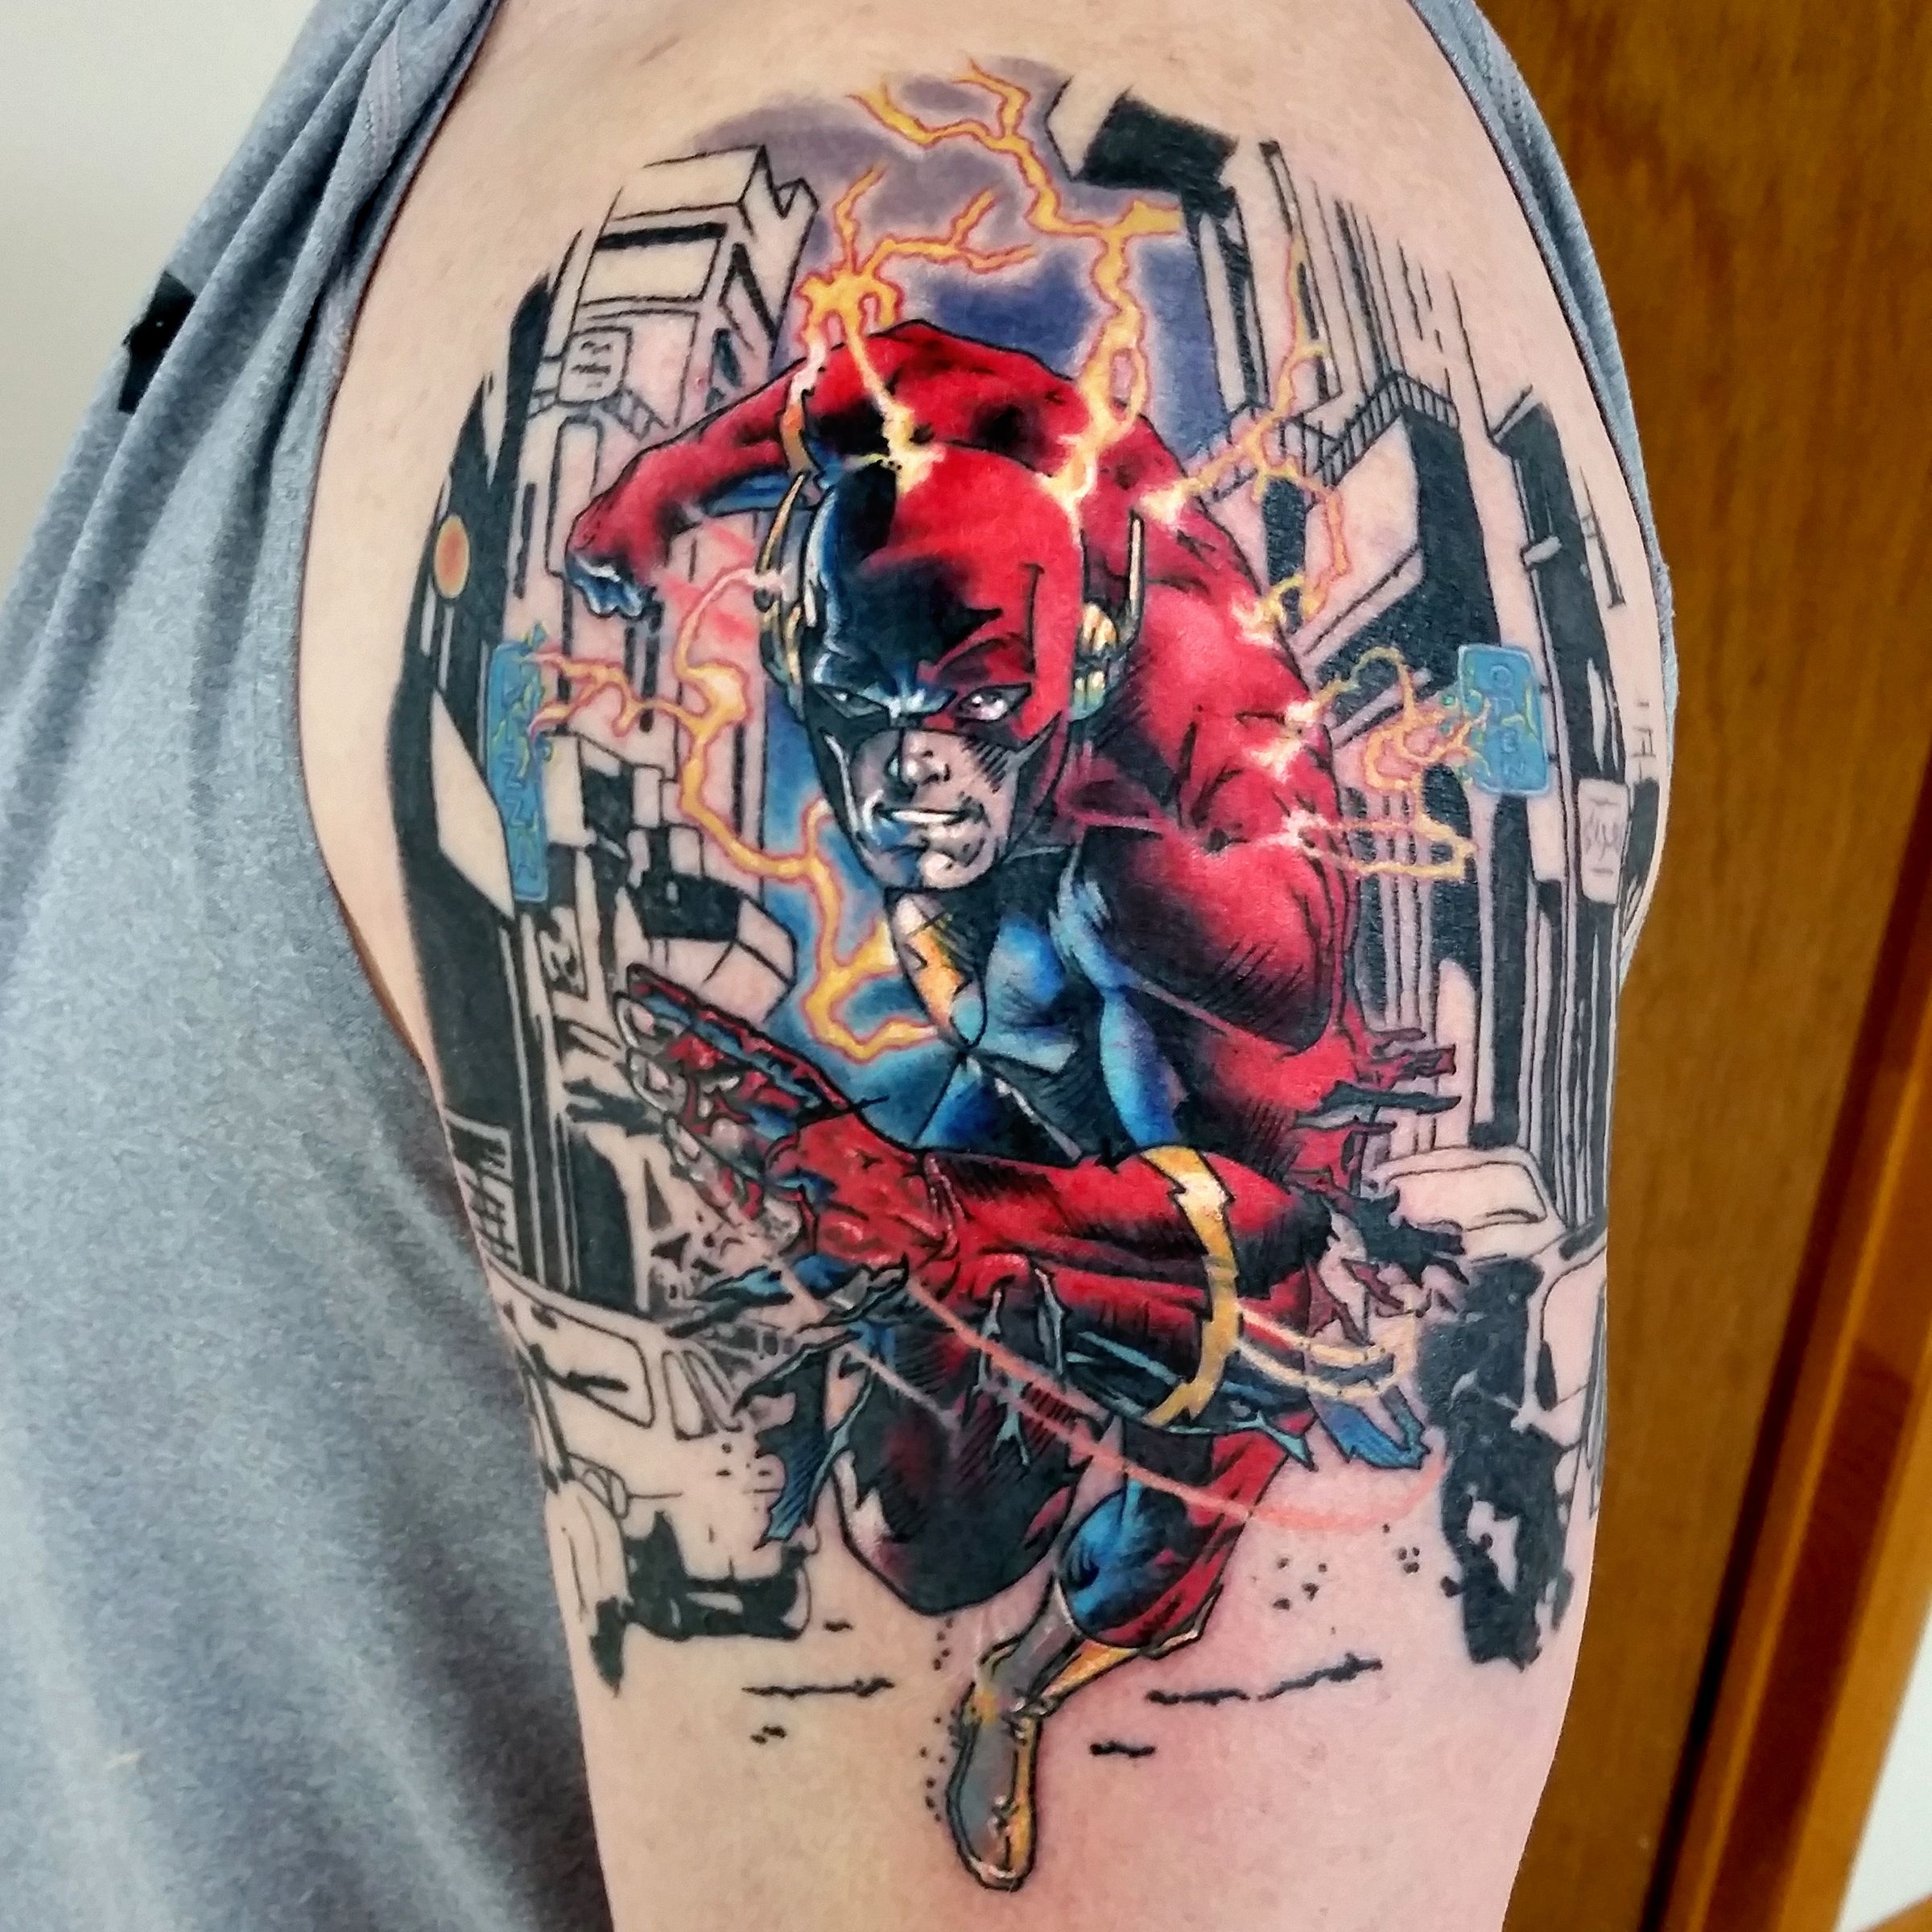 Tattoo Sleeve Flash Template: The Flash Tattoo By Mark Duhan